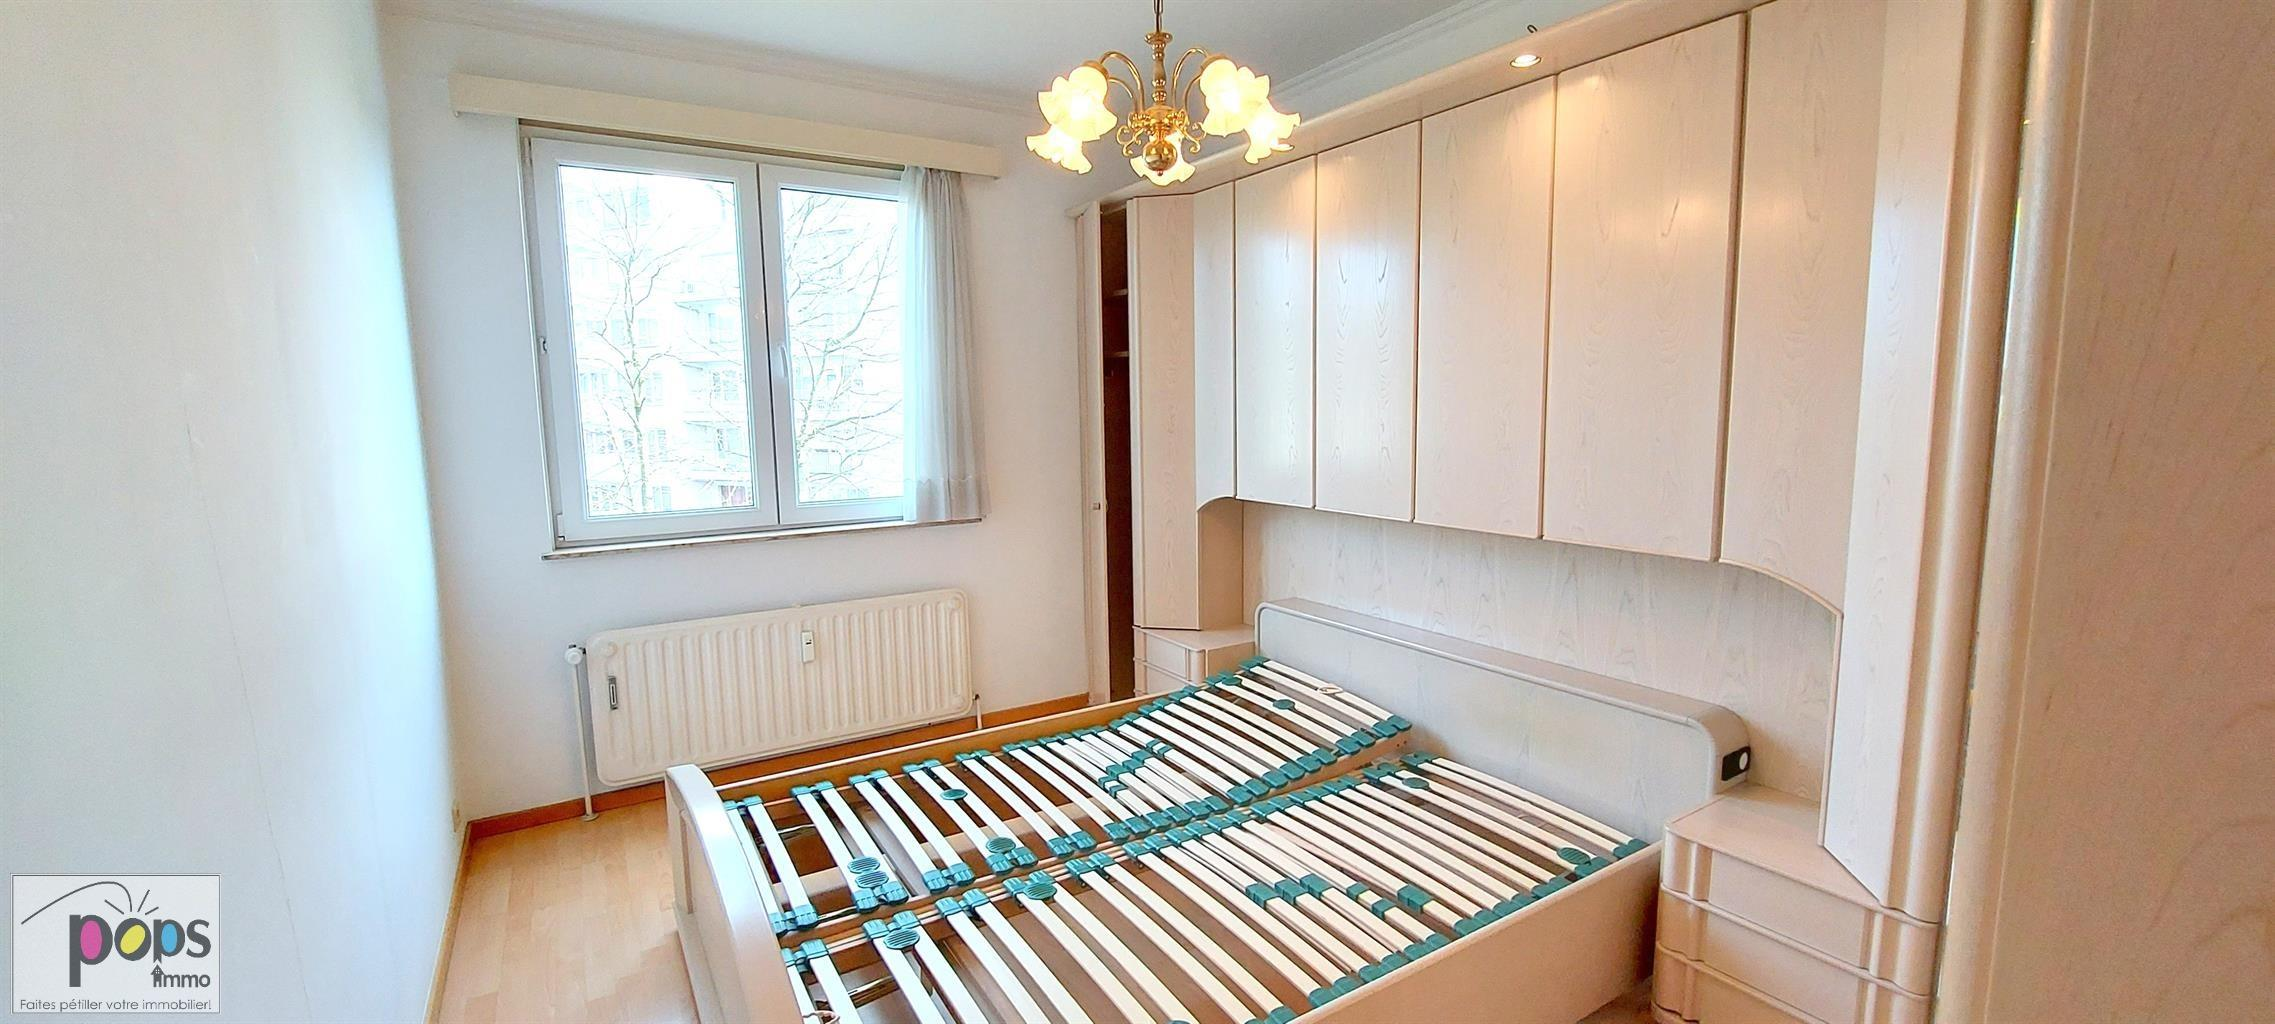 Appartement - Uccle - #4311863-13